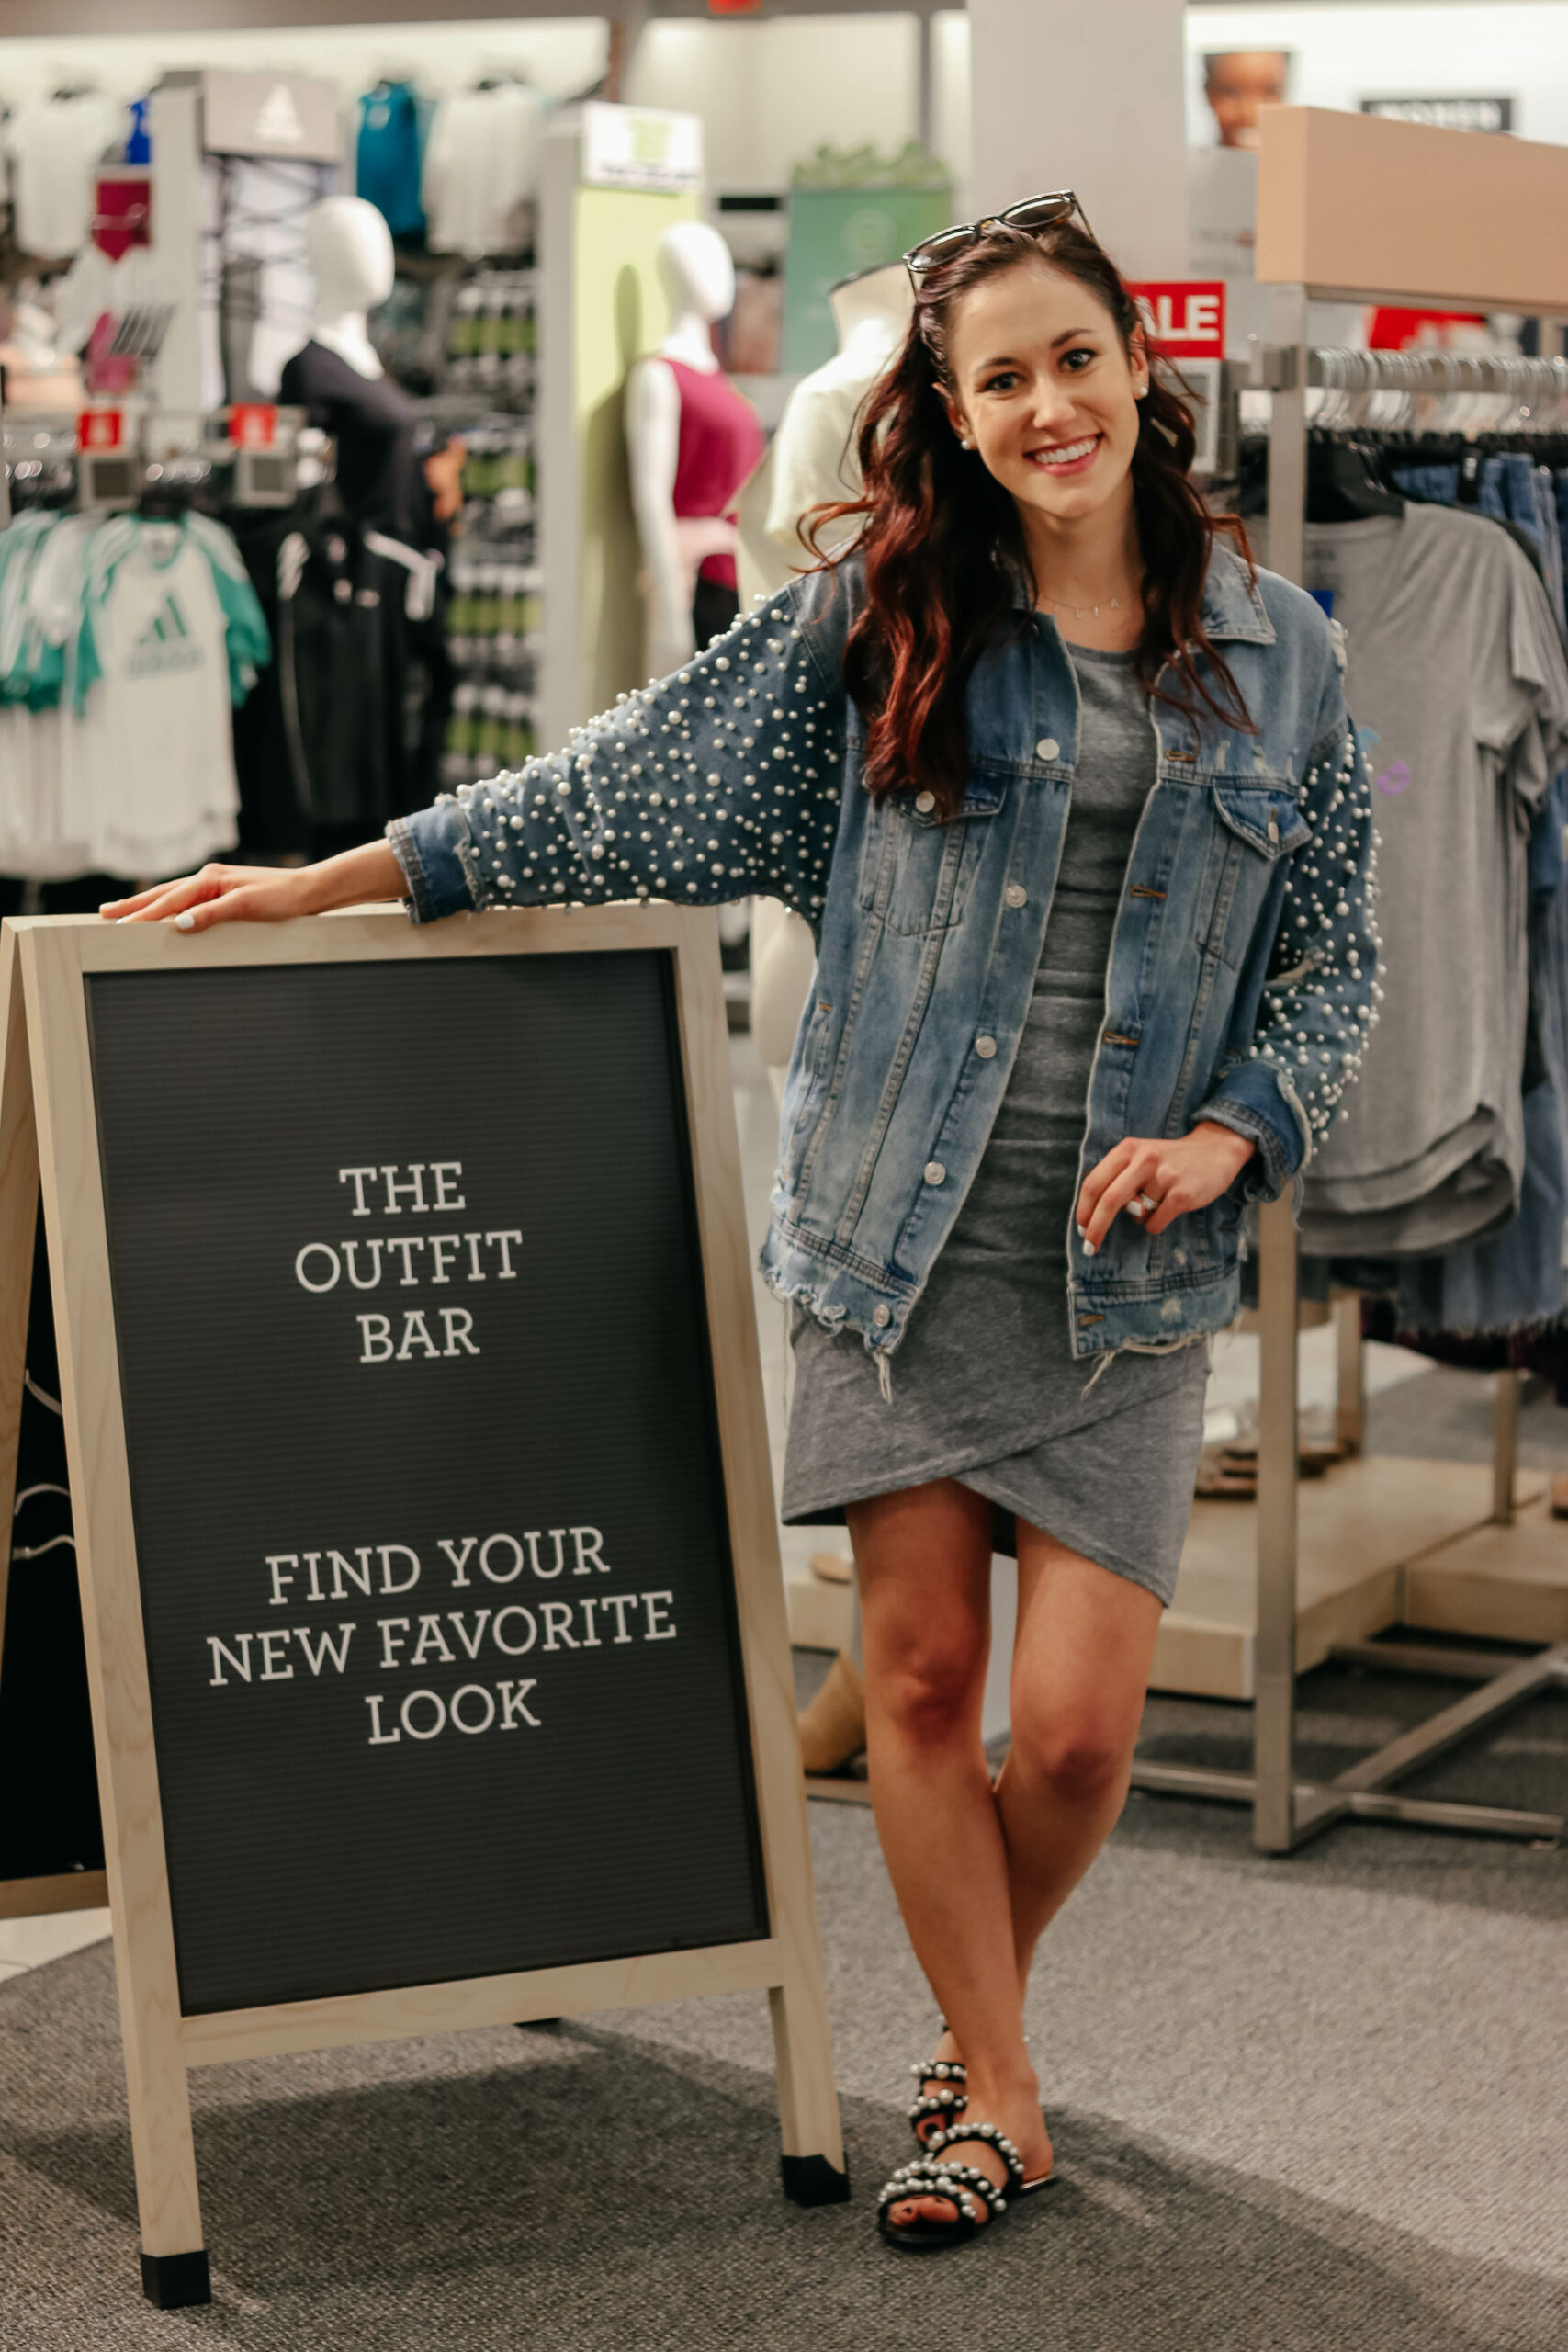 The Outfit Bar at Kohl's for Spring Style on Coming Up Roses